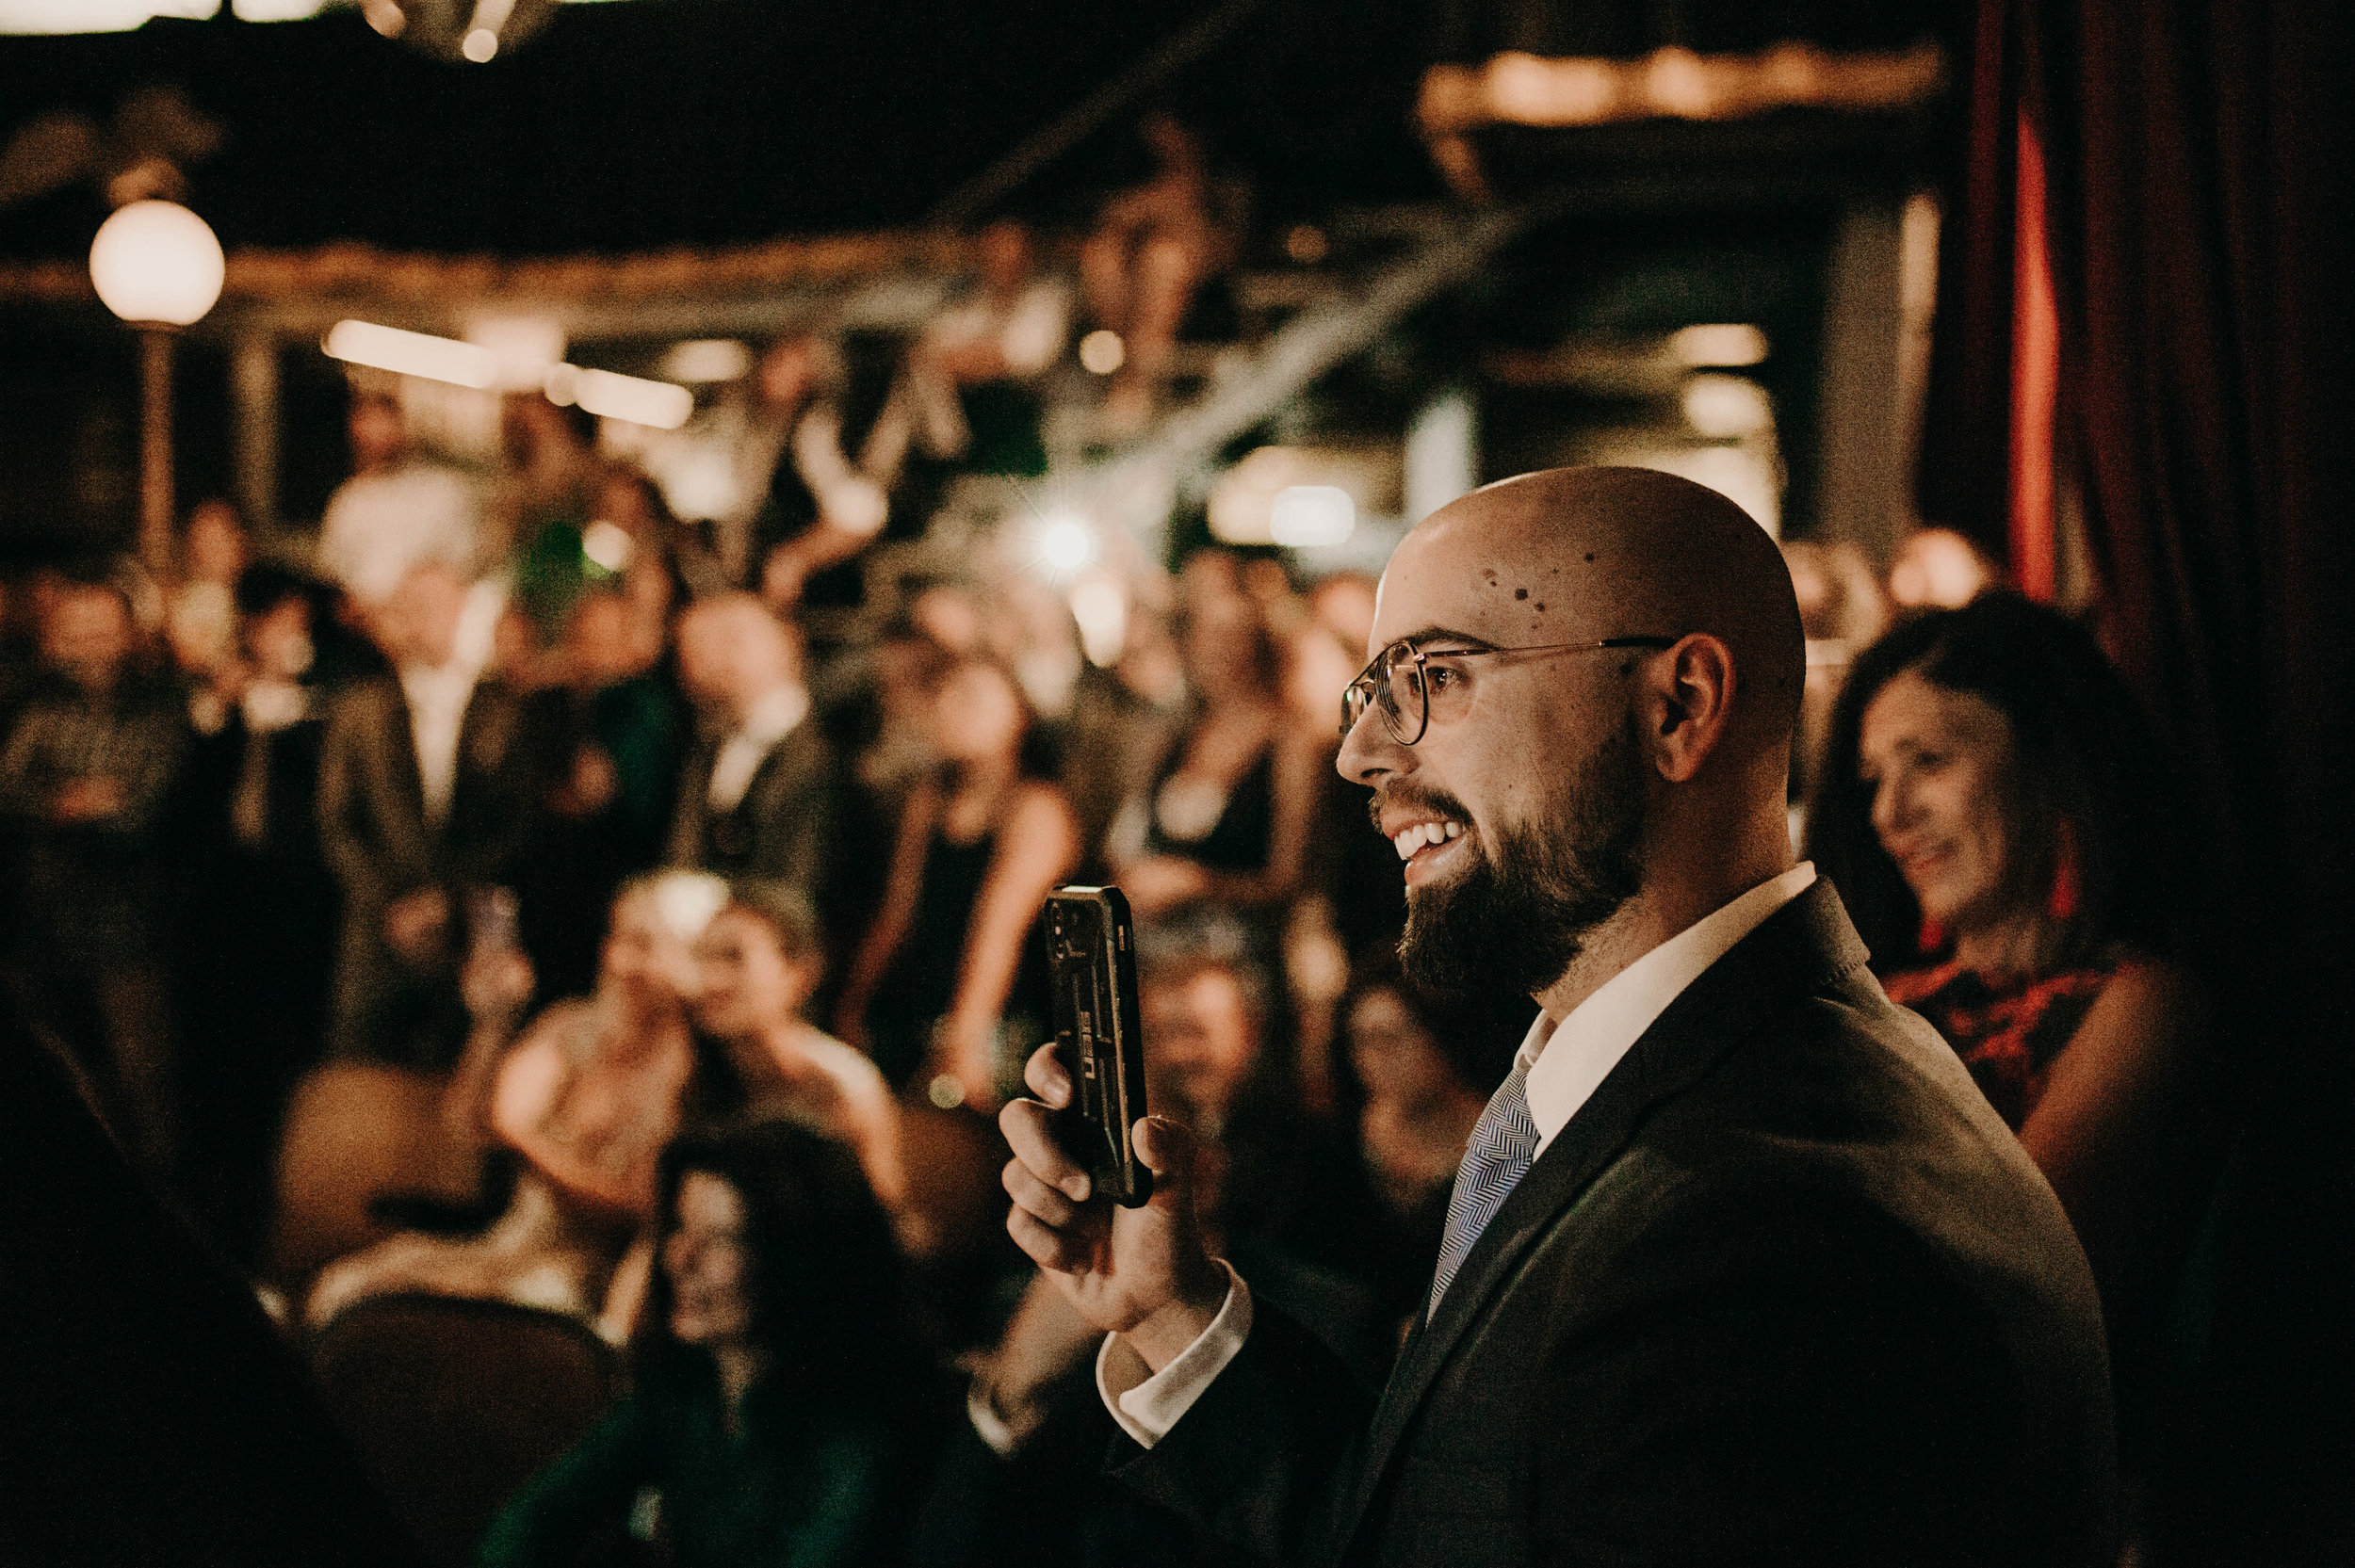 thenortherngirlphotography_bodasindustriales_bodasdiferentes_weddingphotographer_spanishphotographer_spanisgweddingphotographer_happyendings_mercantic_elsiglomercantic_antichrist_love_neon_weddingtattoo_CYNTHIAMANOLO-353.jpg